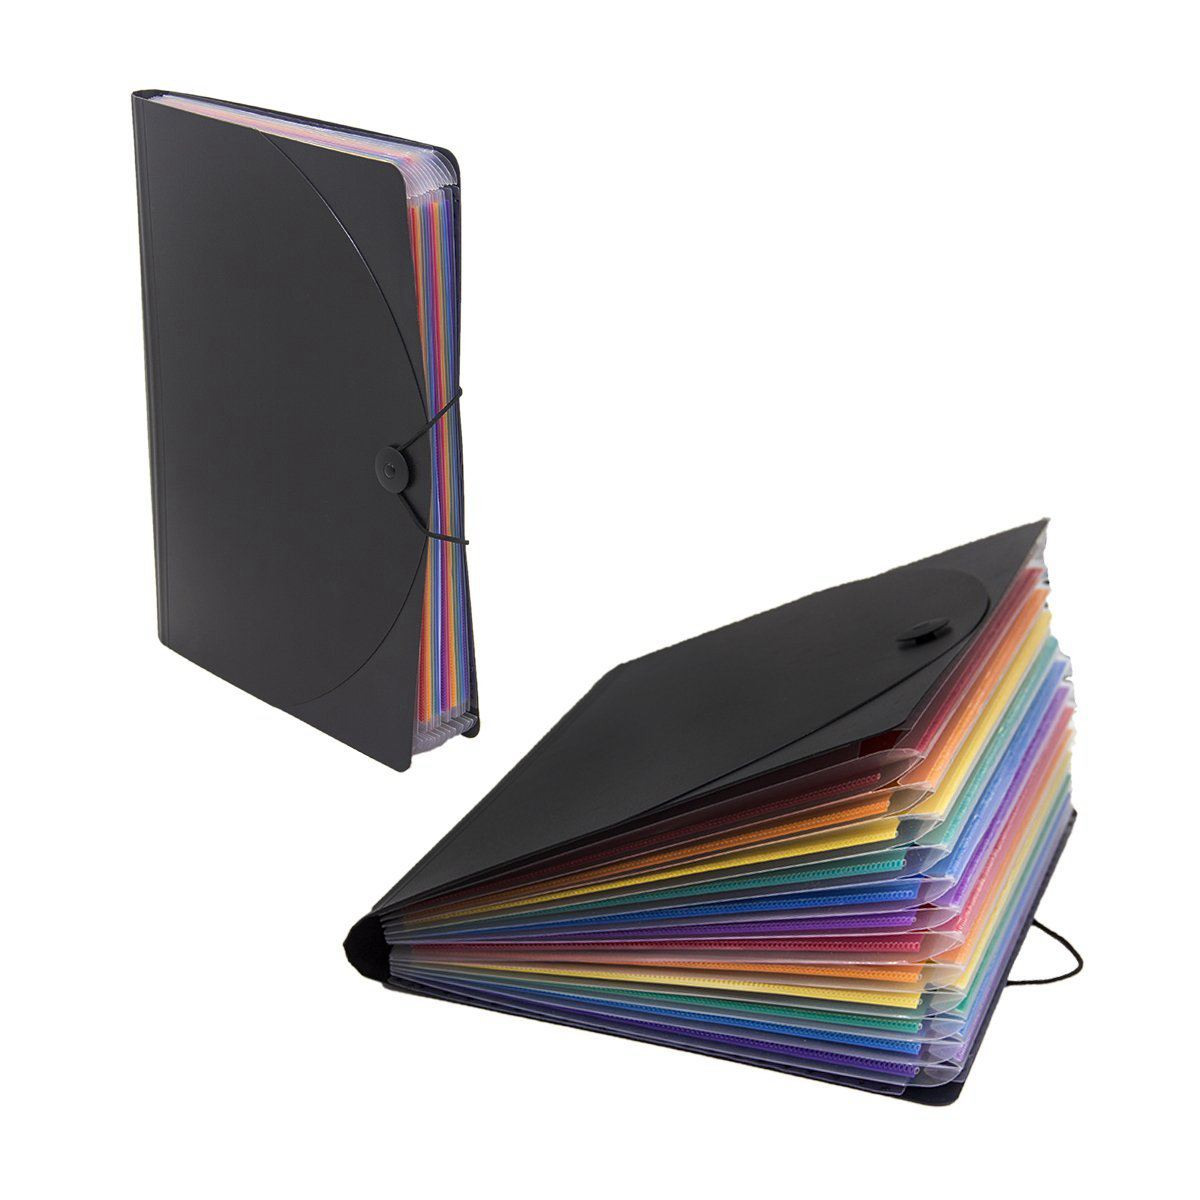 PPYY NEW -12 Pocket Expanding Files Folder/ A4 Expandable File organizer/ Portable Accordion File Folder/ High Capacity Multic ppyy new a4 zipped conference folder business faux leather document organiser portfolio black